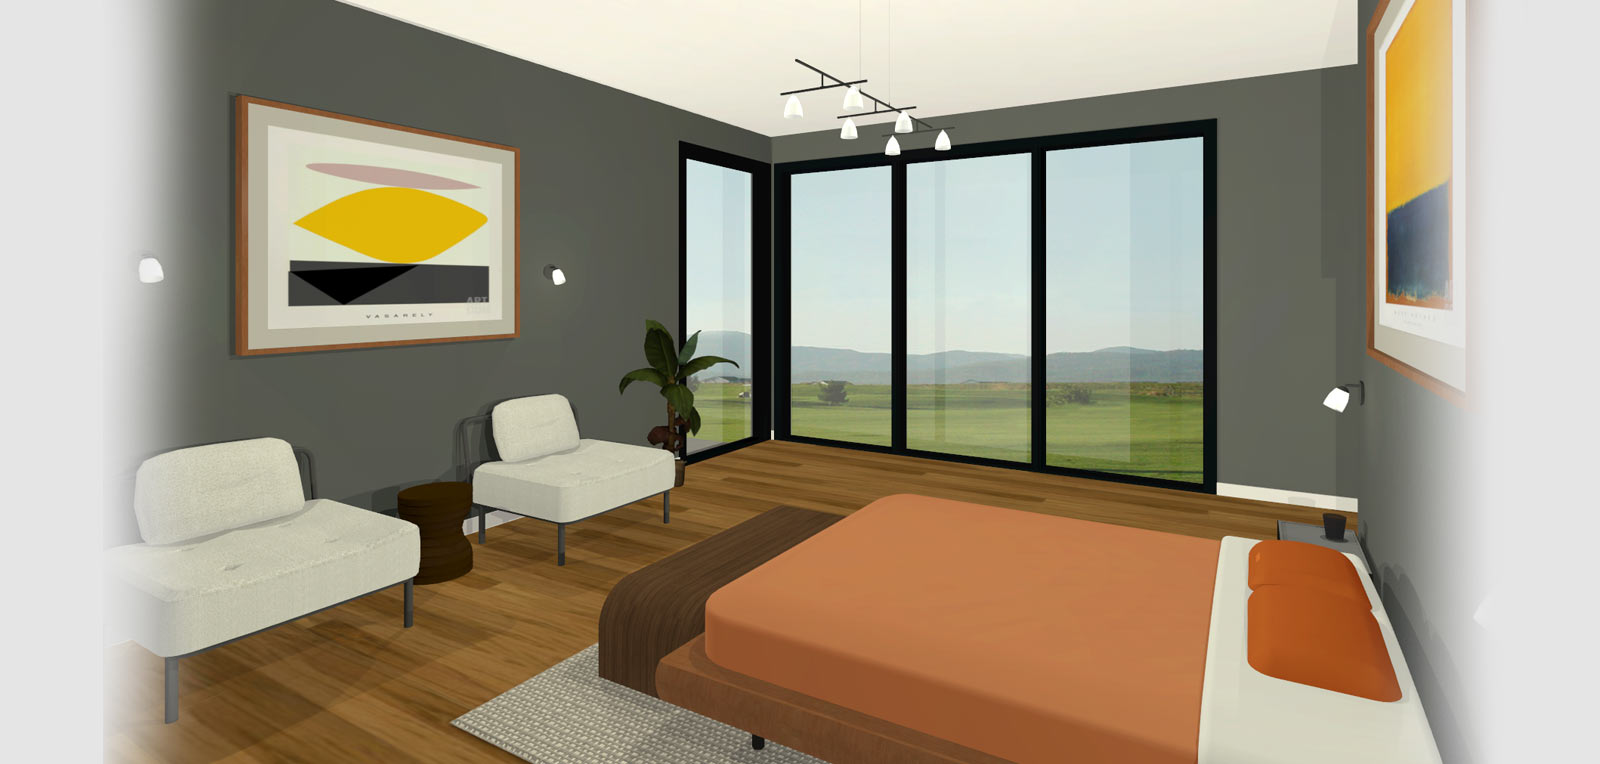 Home Design Interior Photos Home Designer Interior Design Software ...